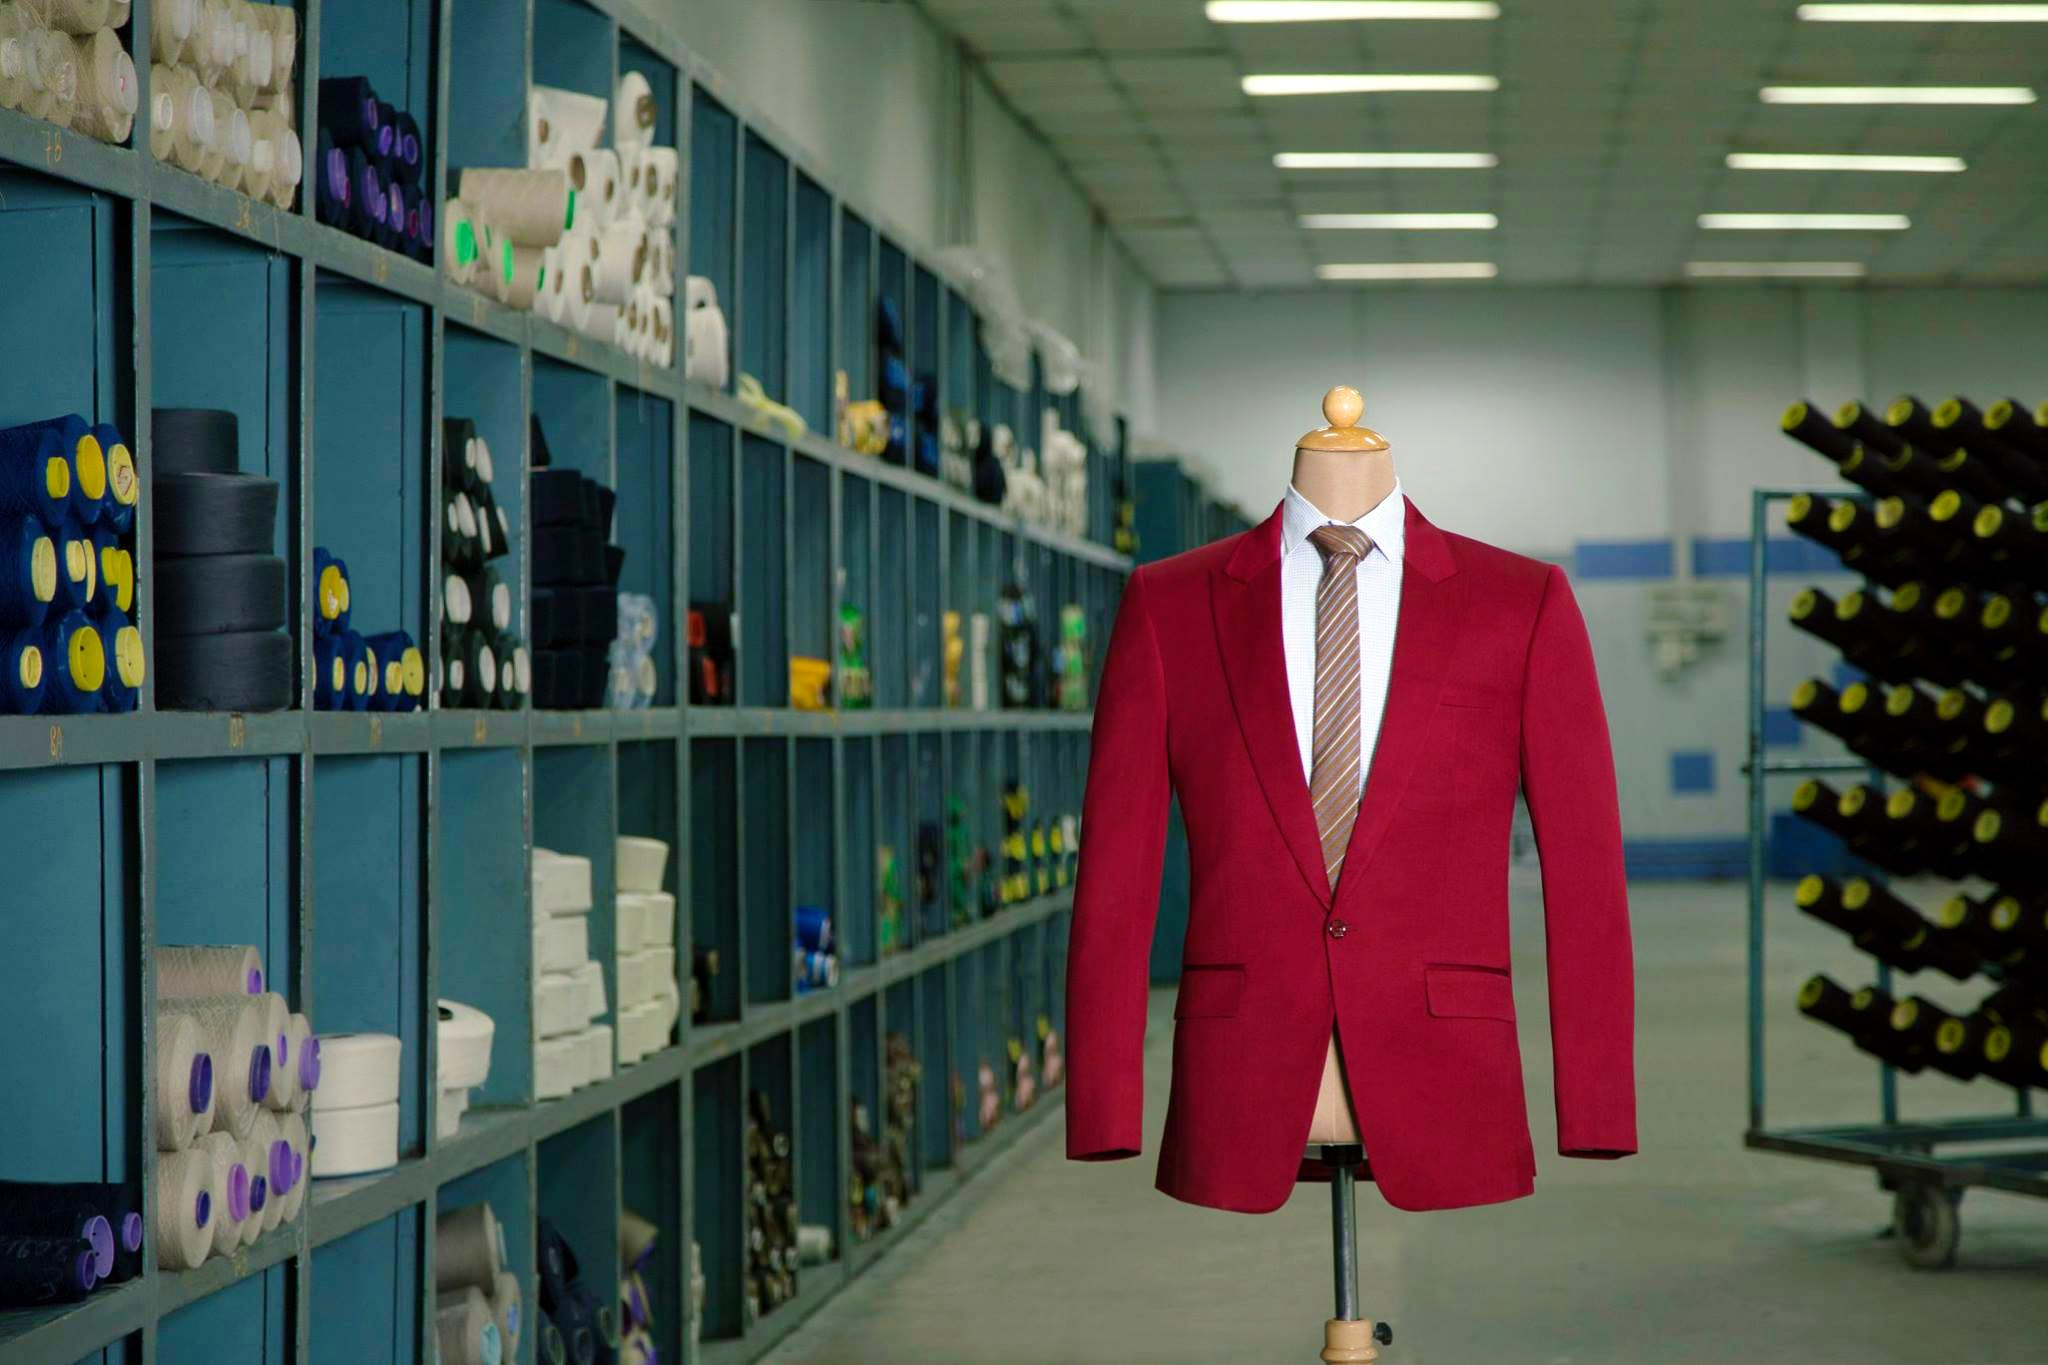 Suit,Outerwear,Room,Blazer,Formal wear,Building,Outlet store